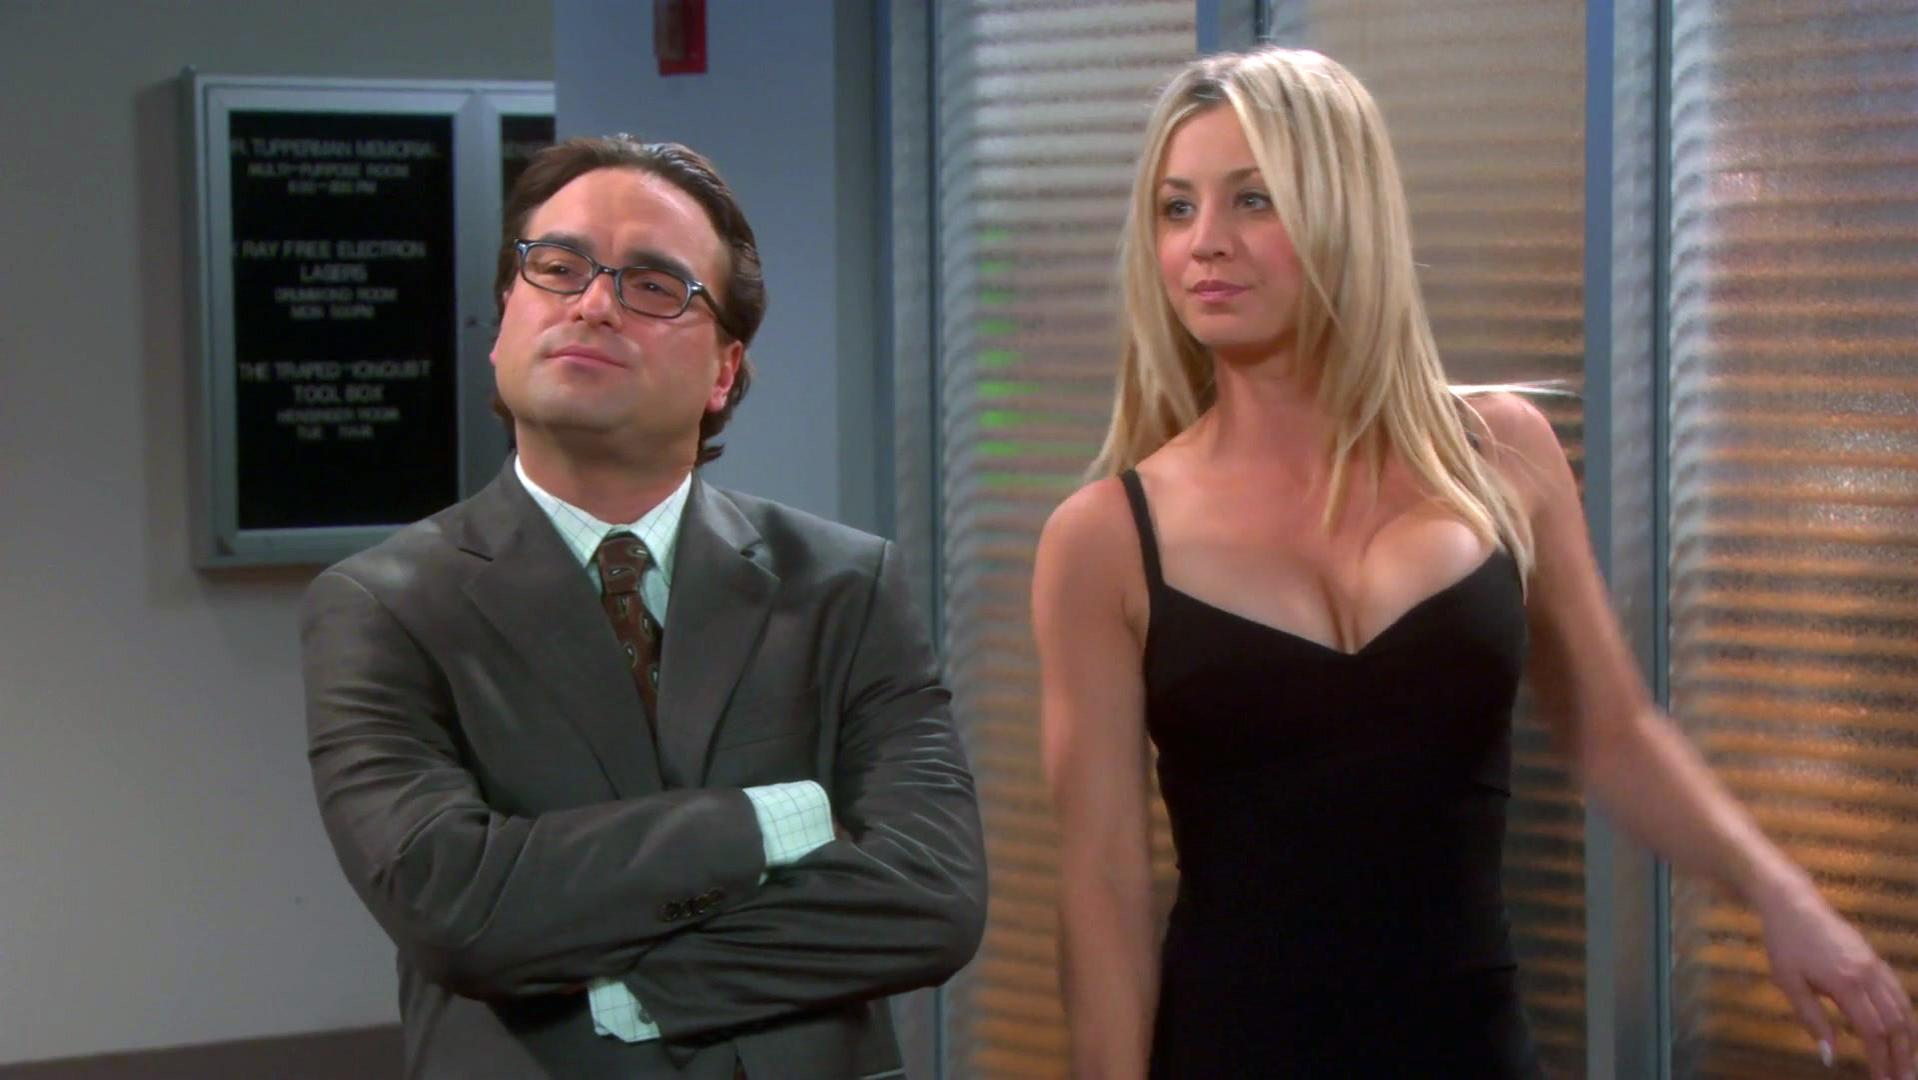 Kaley Cuoco sexy - The Big Bang Theory s06e20 (2013)